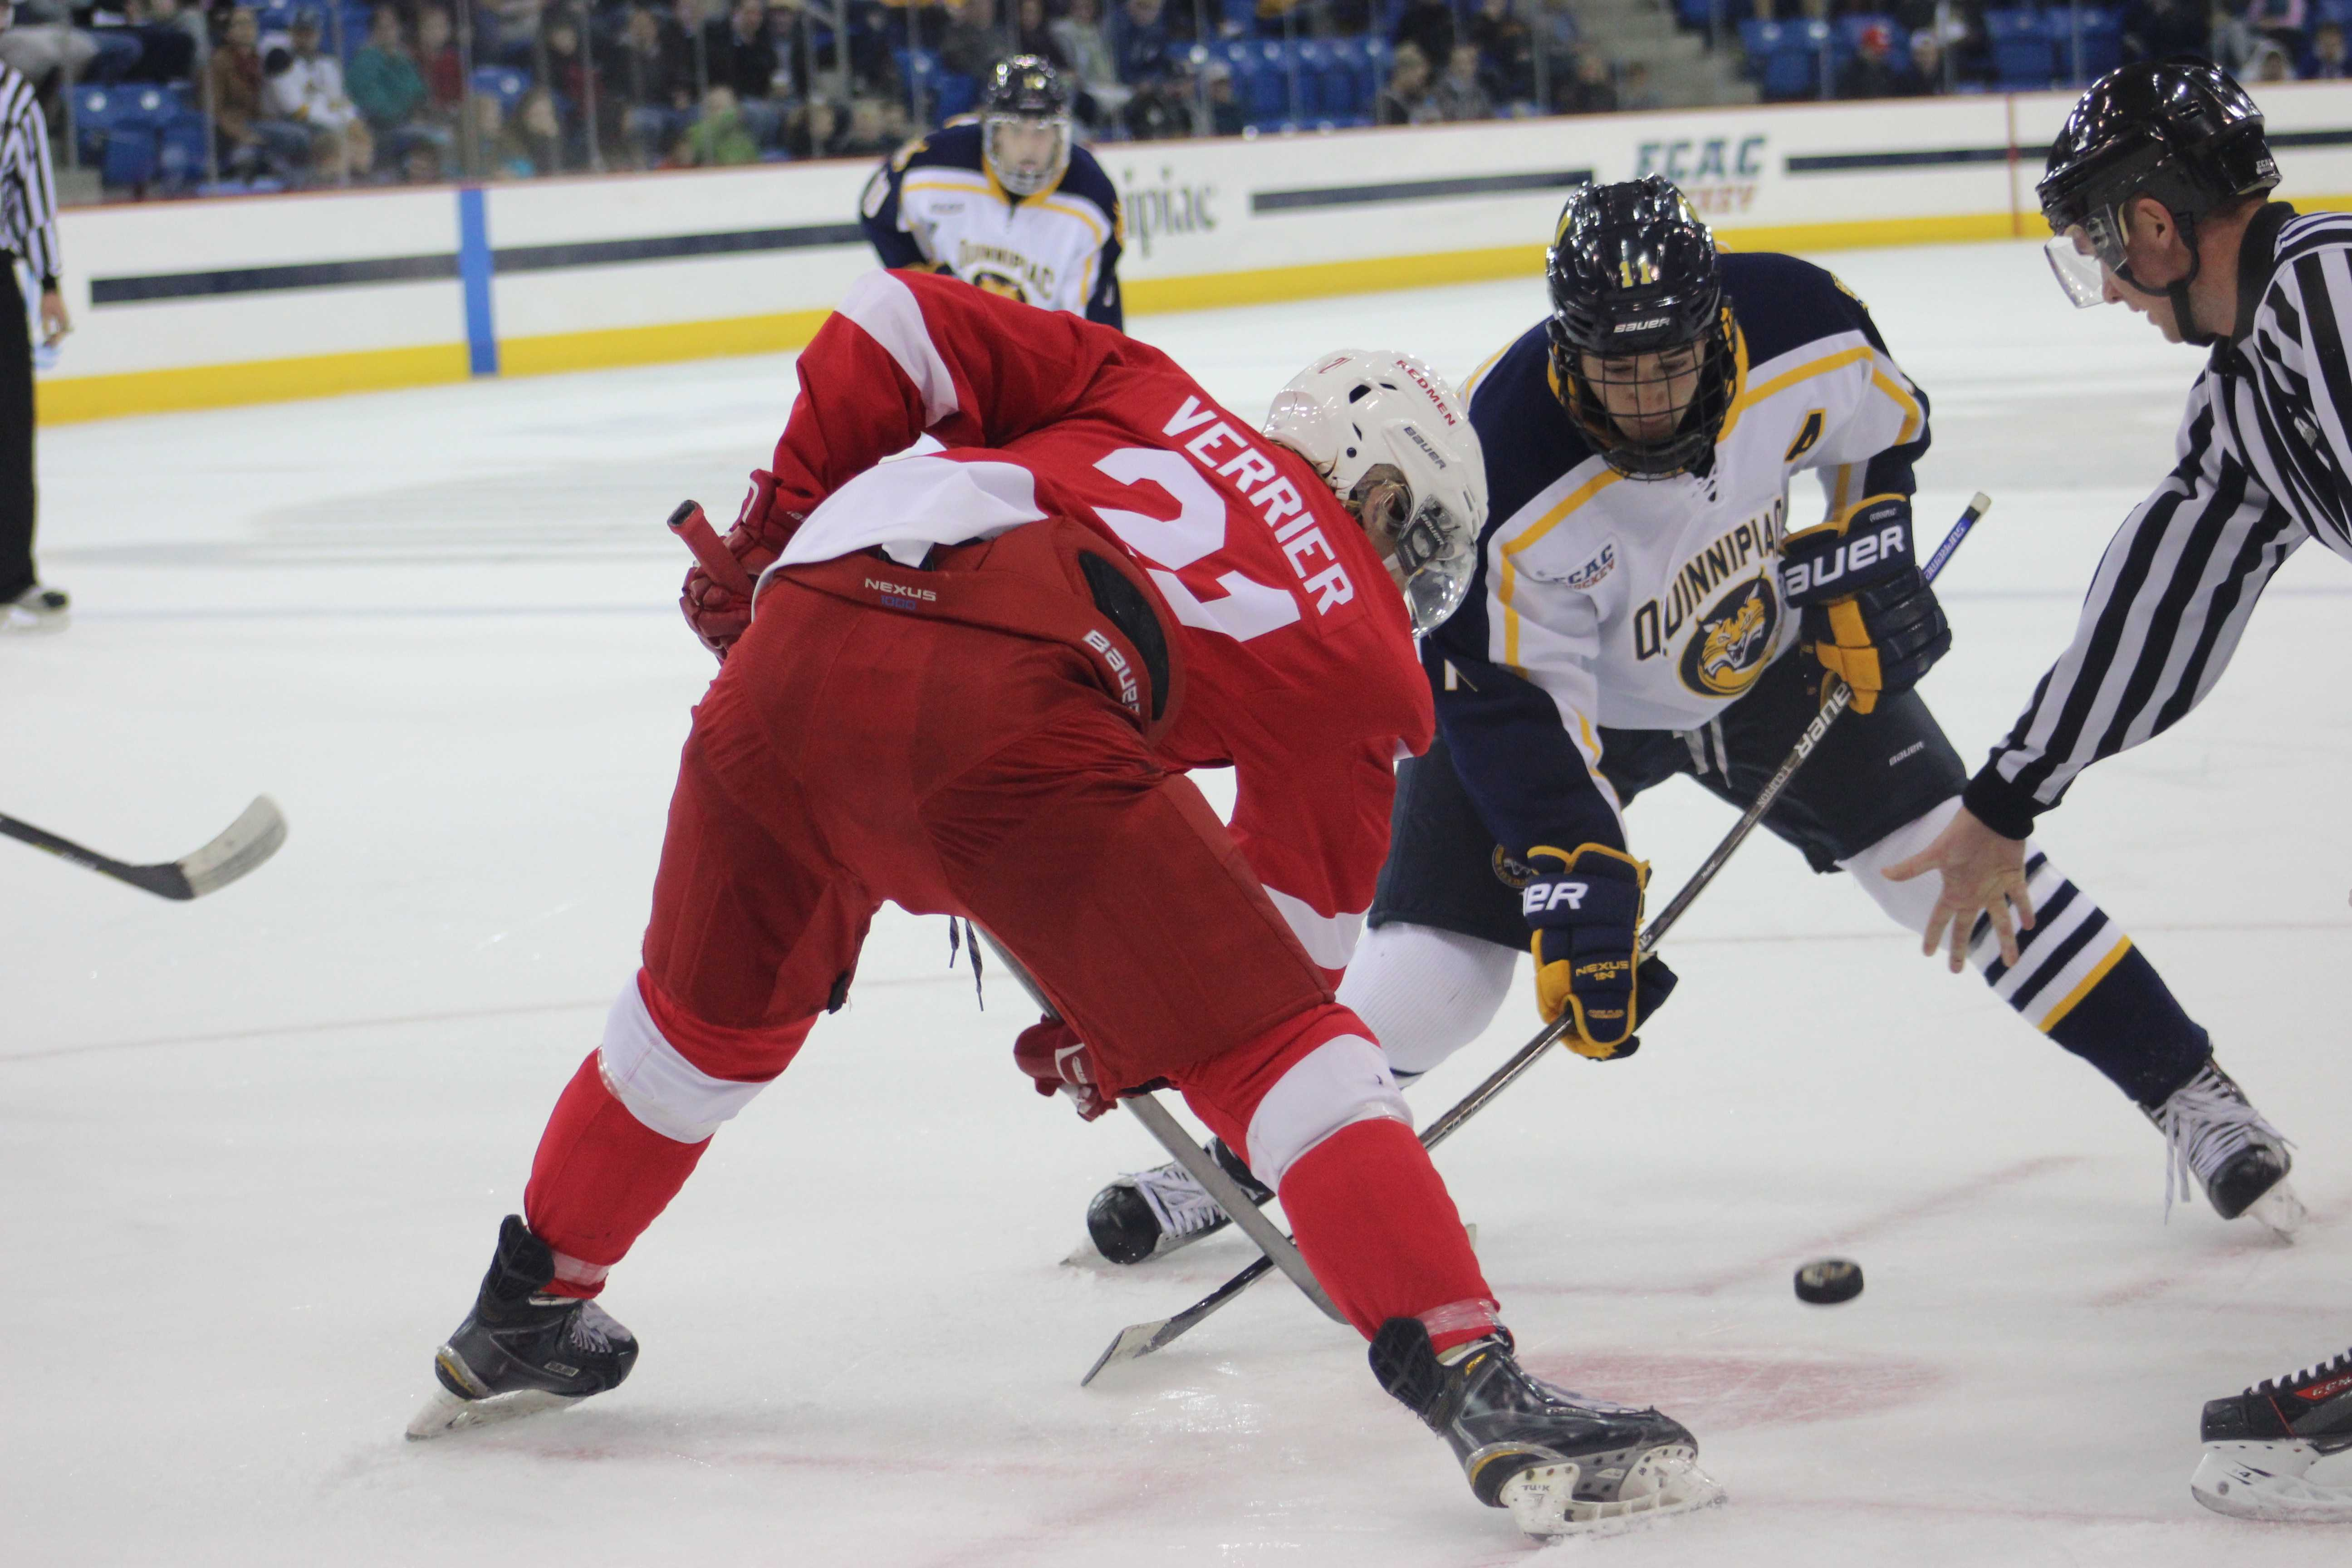 2016-17 Men's Ice Hockey Preview | The Quinnipiac Chronicle